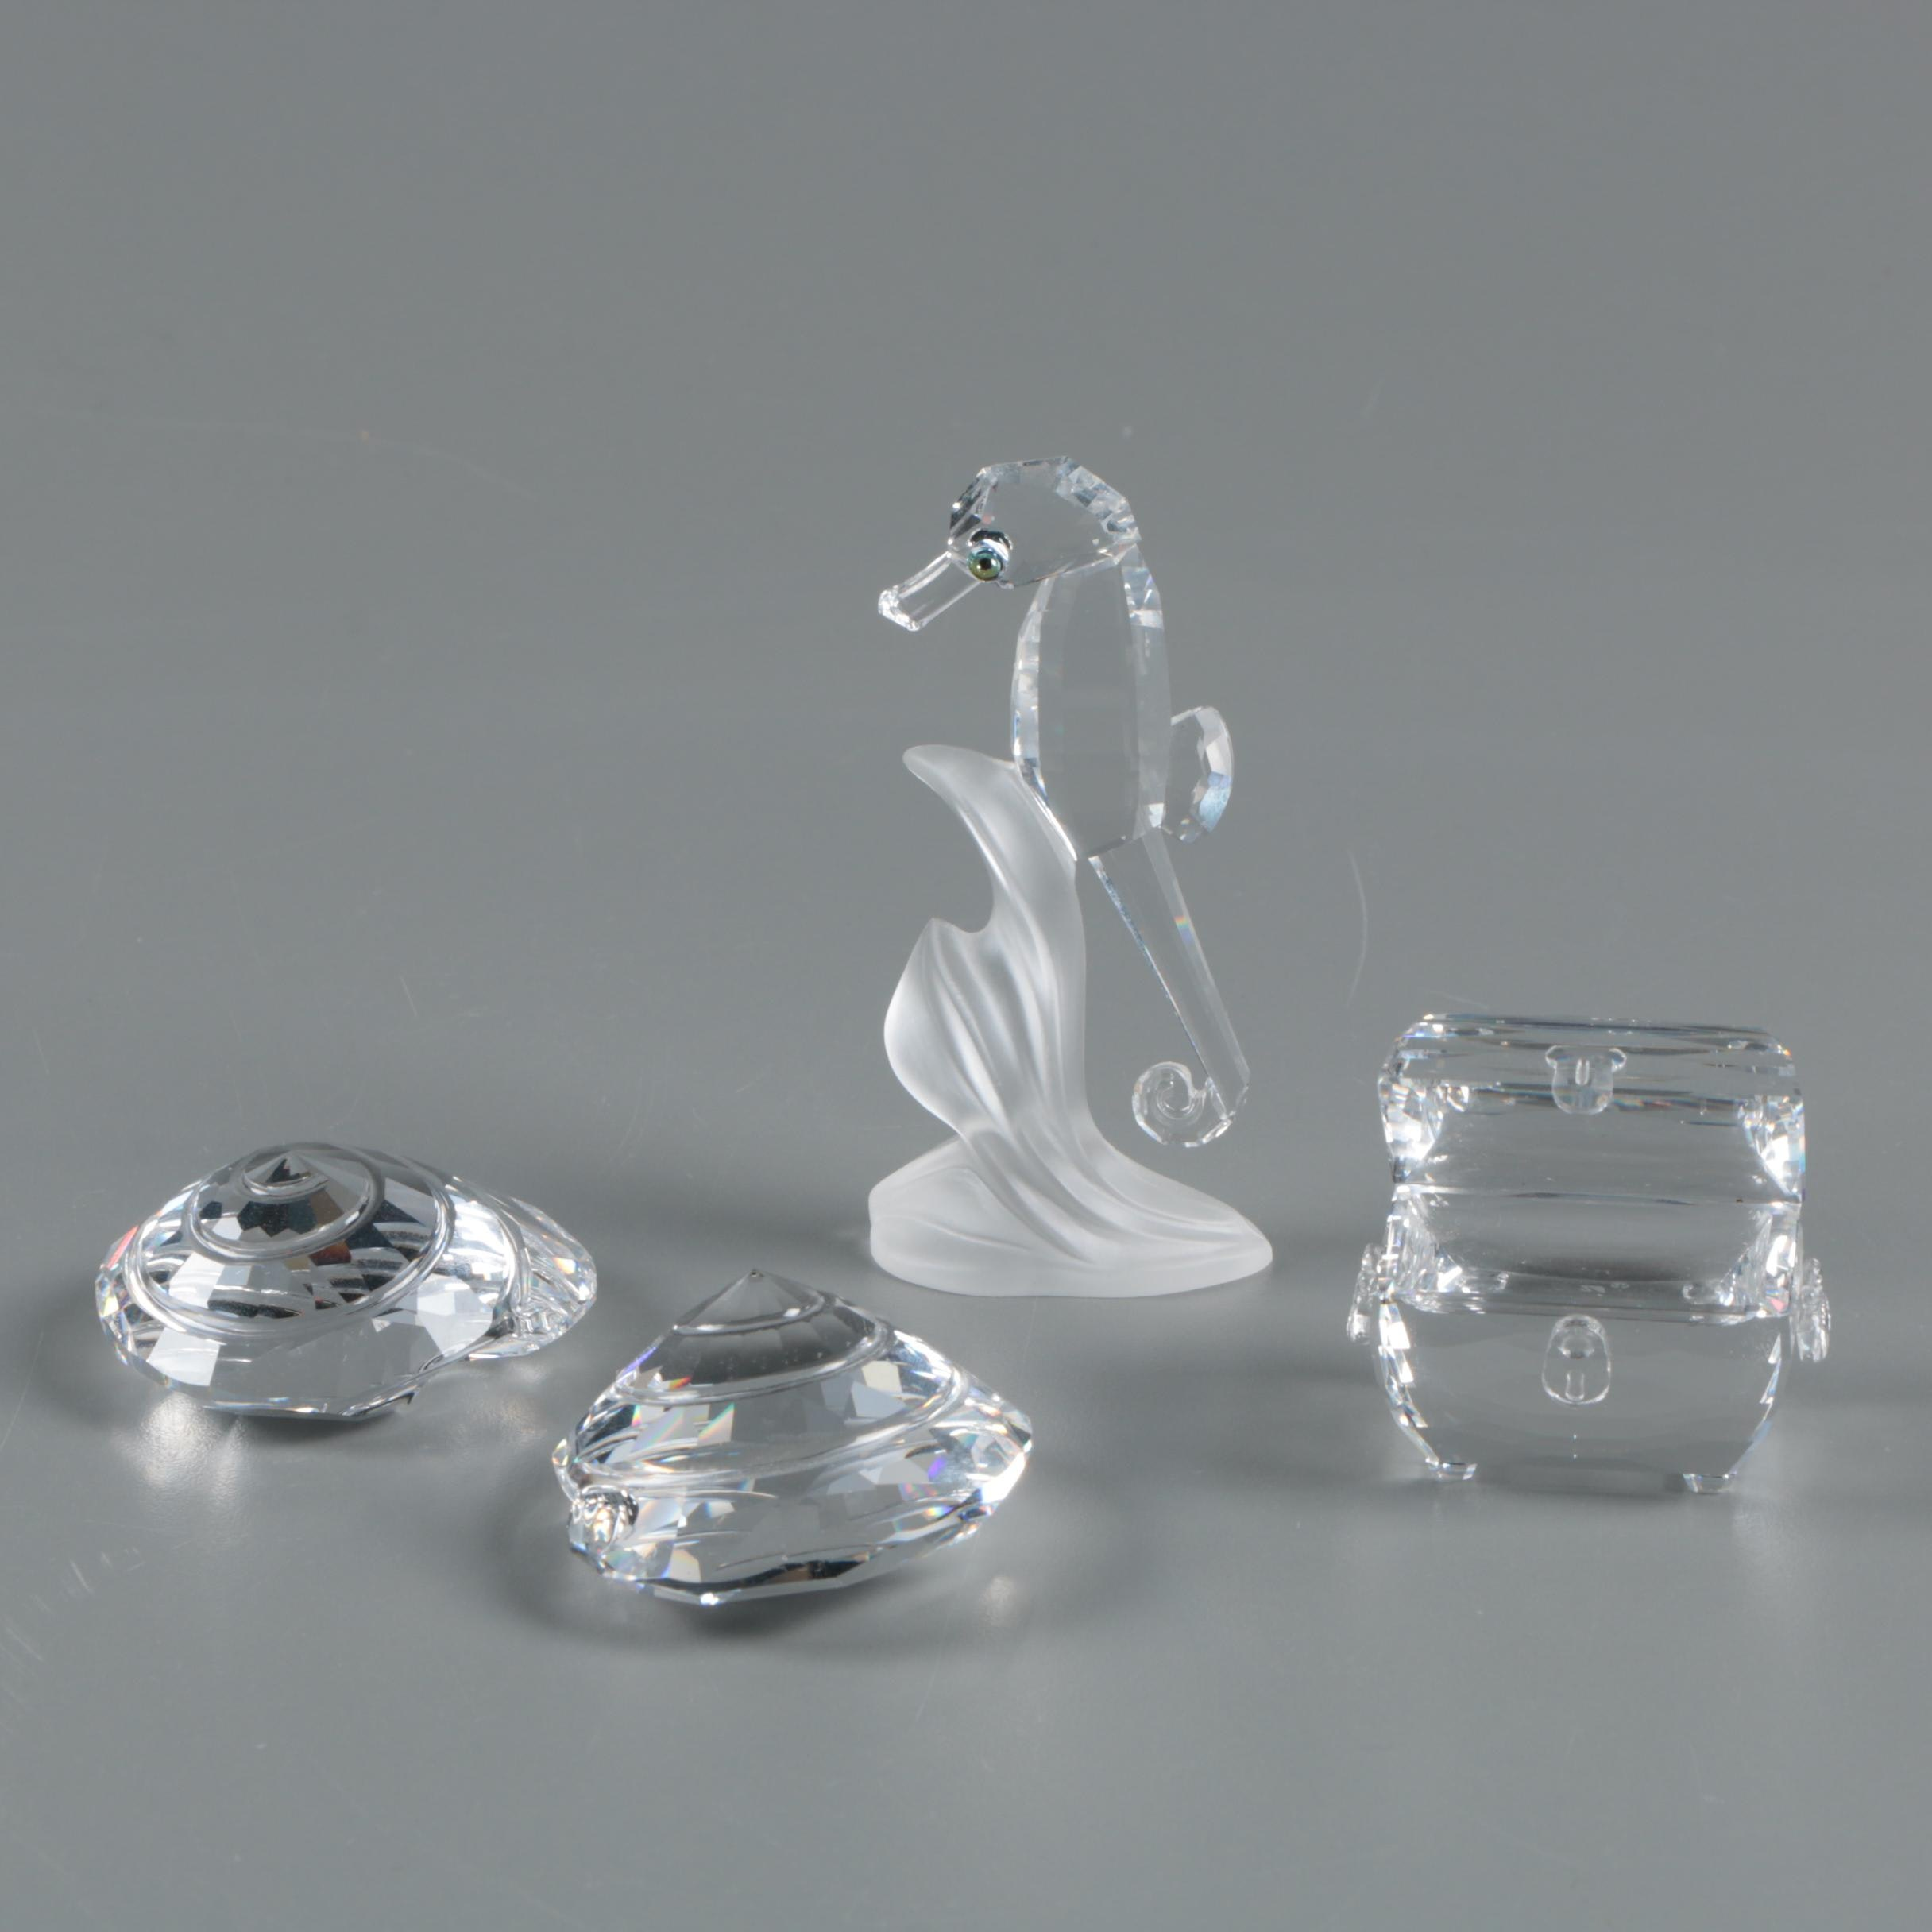 Swarovski Sea Themed Crystal Figurines